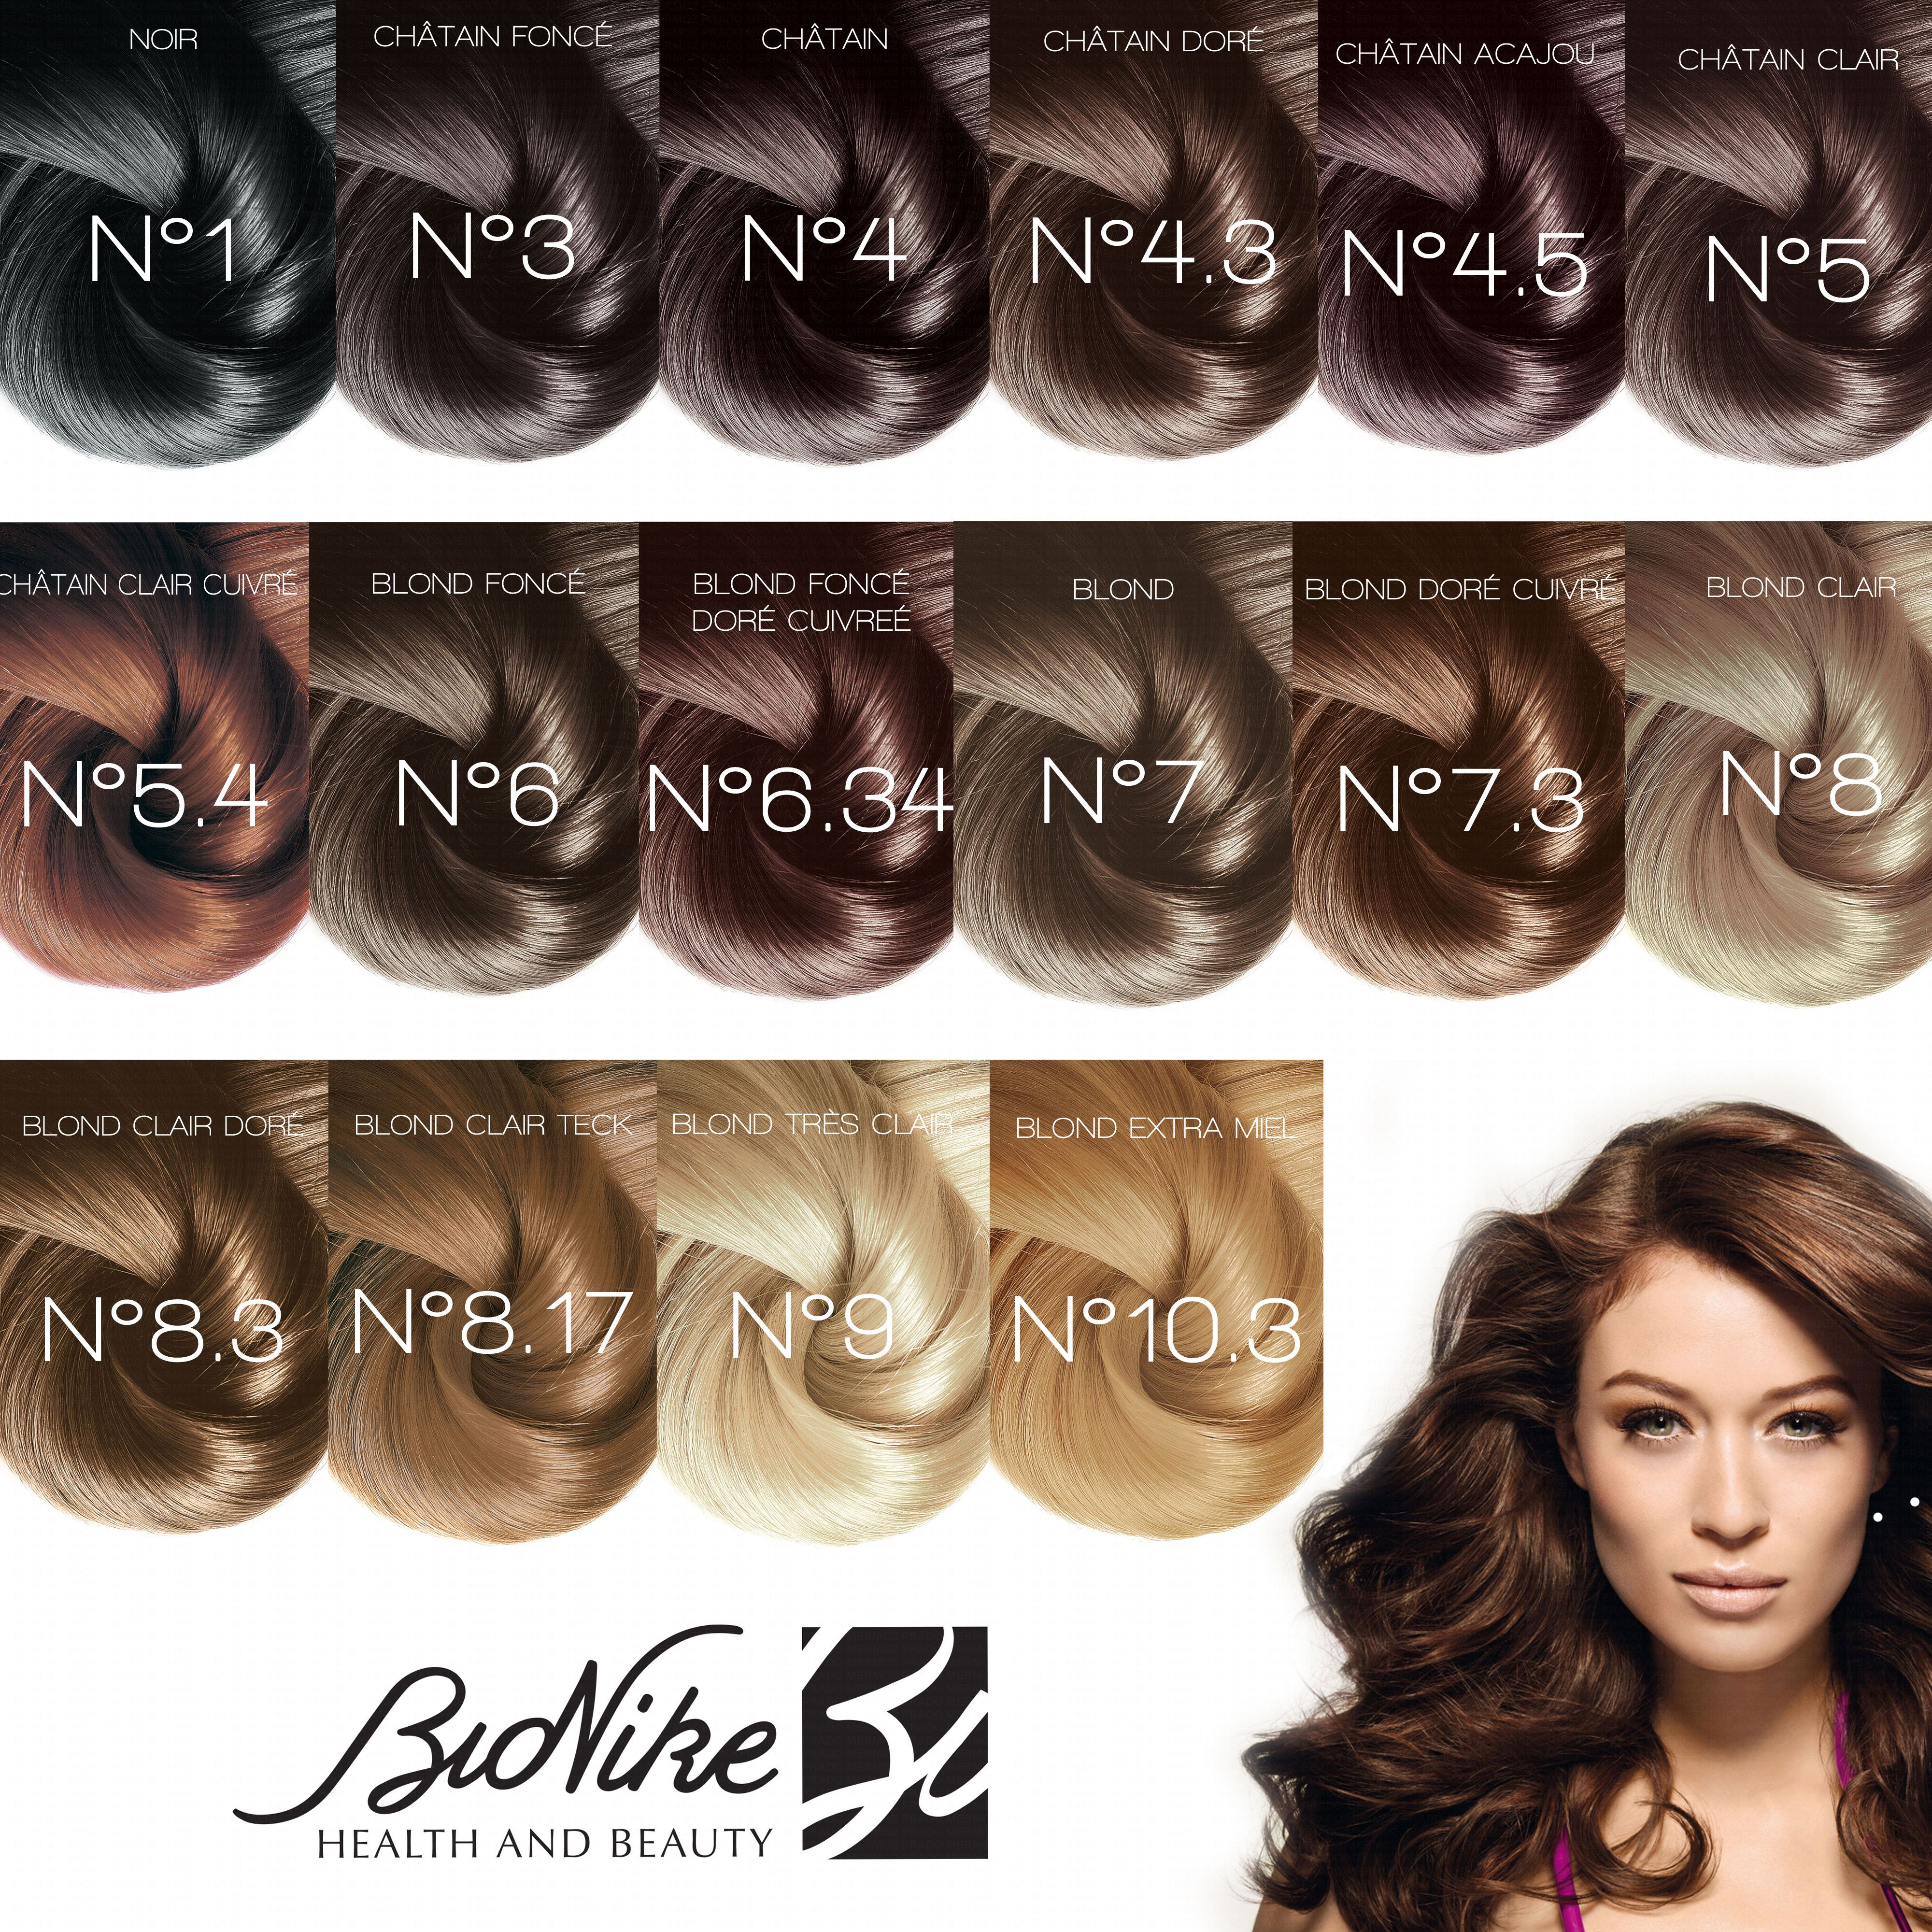 bionike shine on 634 blond fonc dor cuivr 1 tube coloration 50ml 1 flacon rvlateur - Coloration Cheveux Dor Cuivr